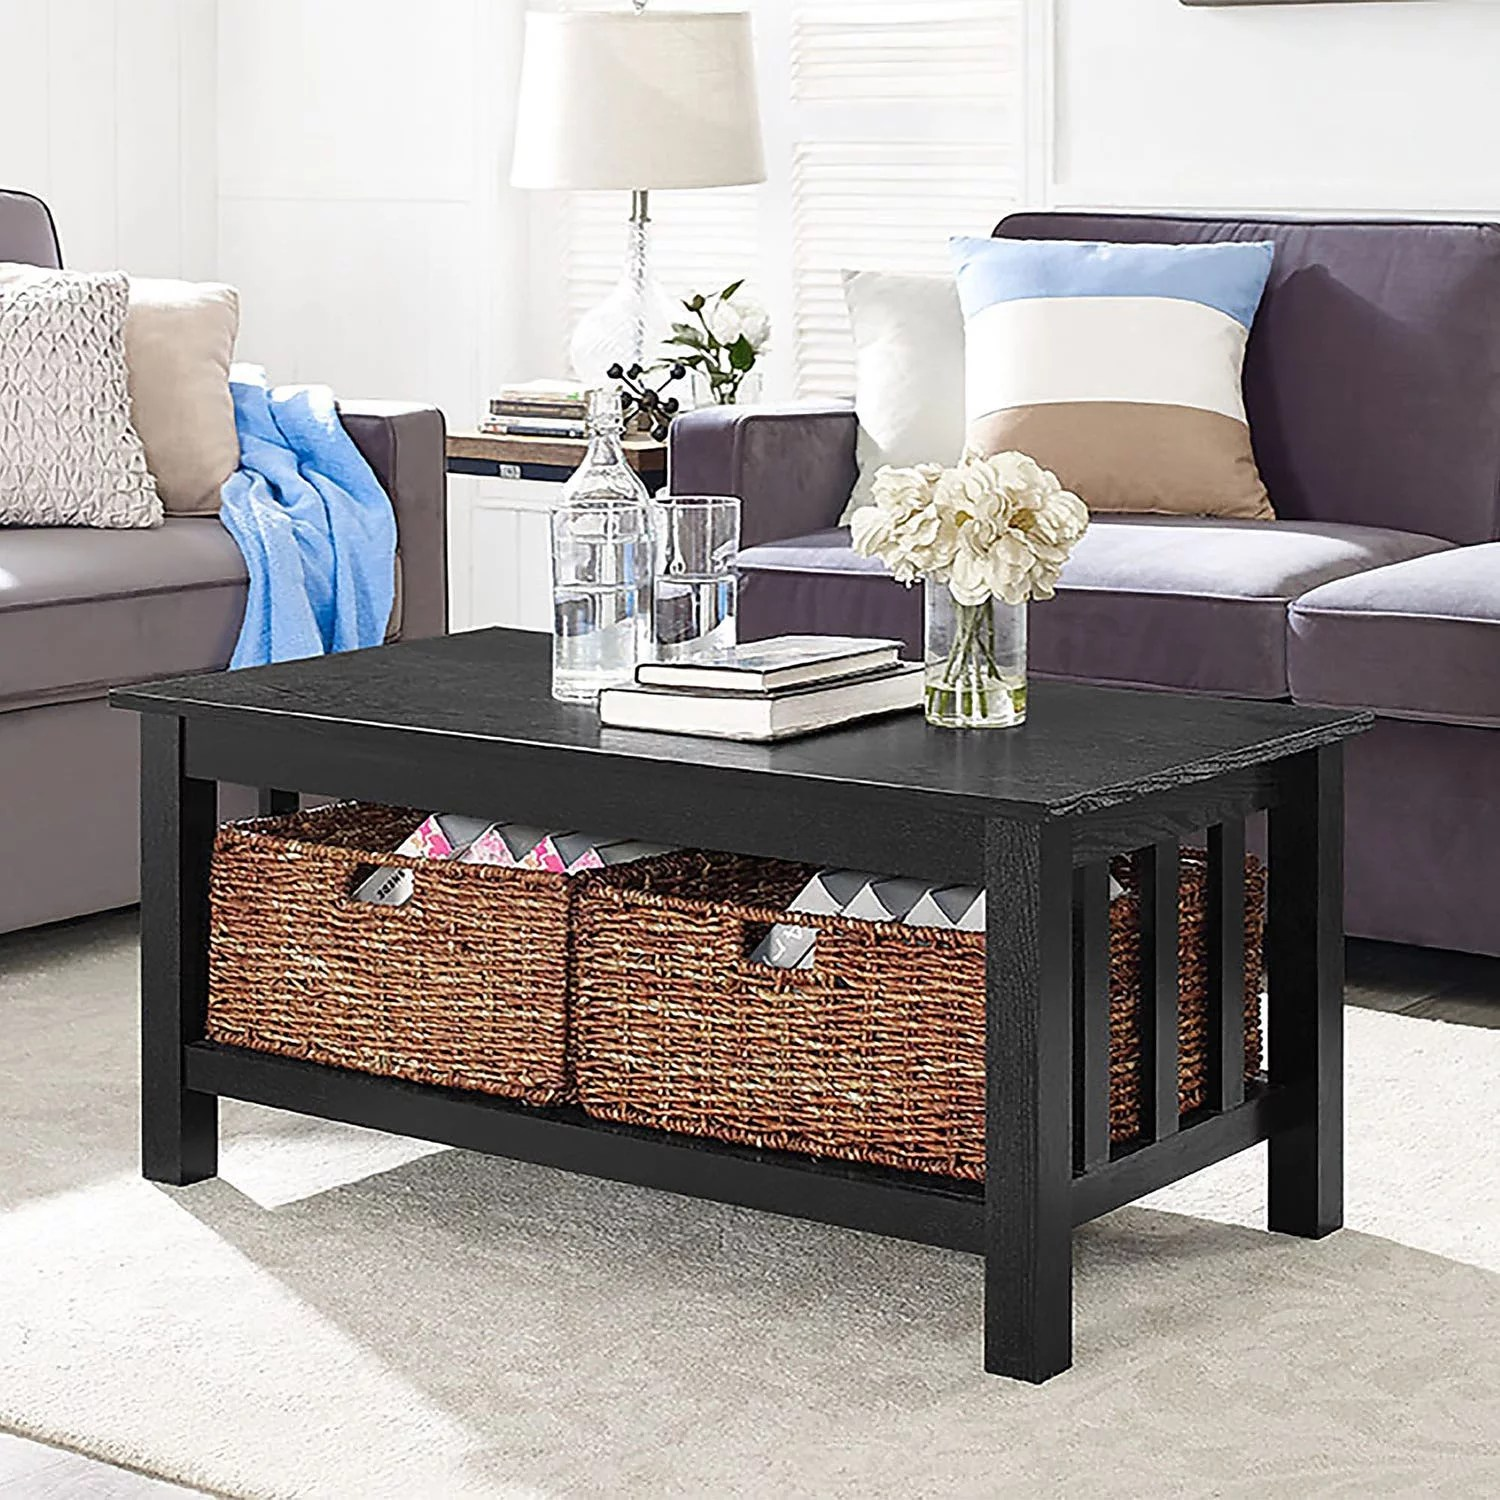 wood coffee table with storage baskets